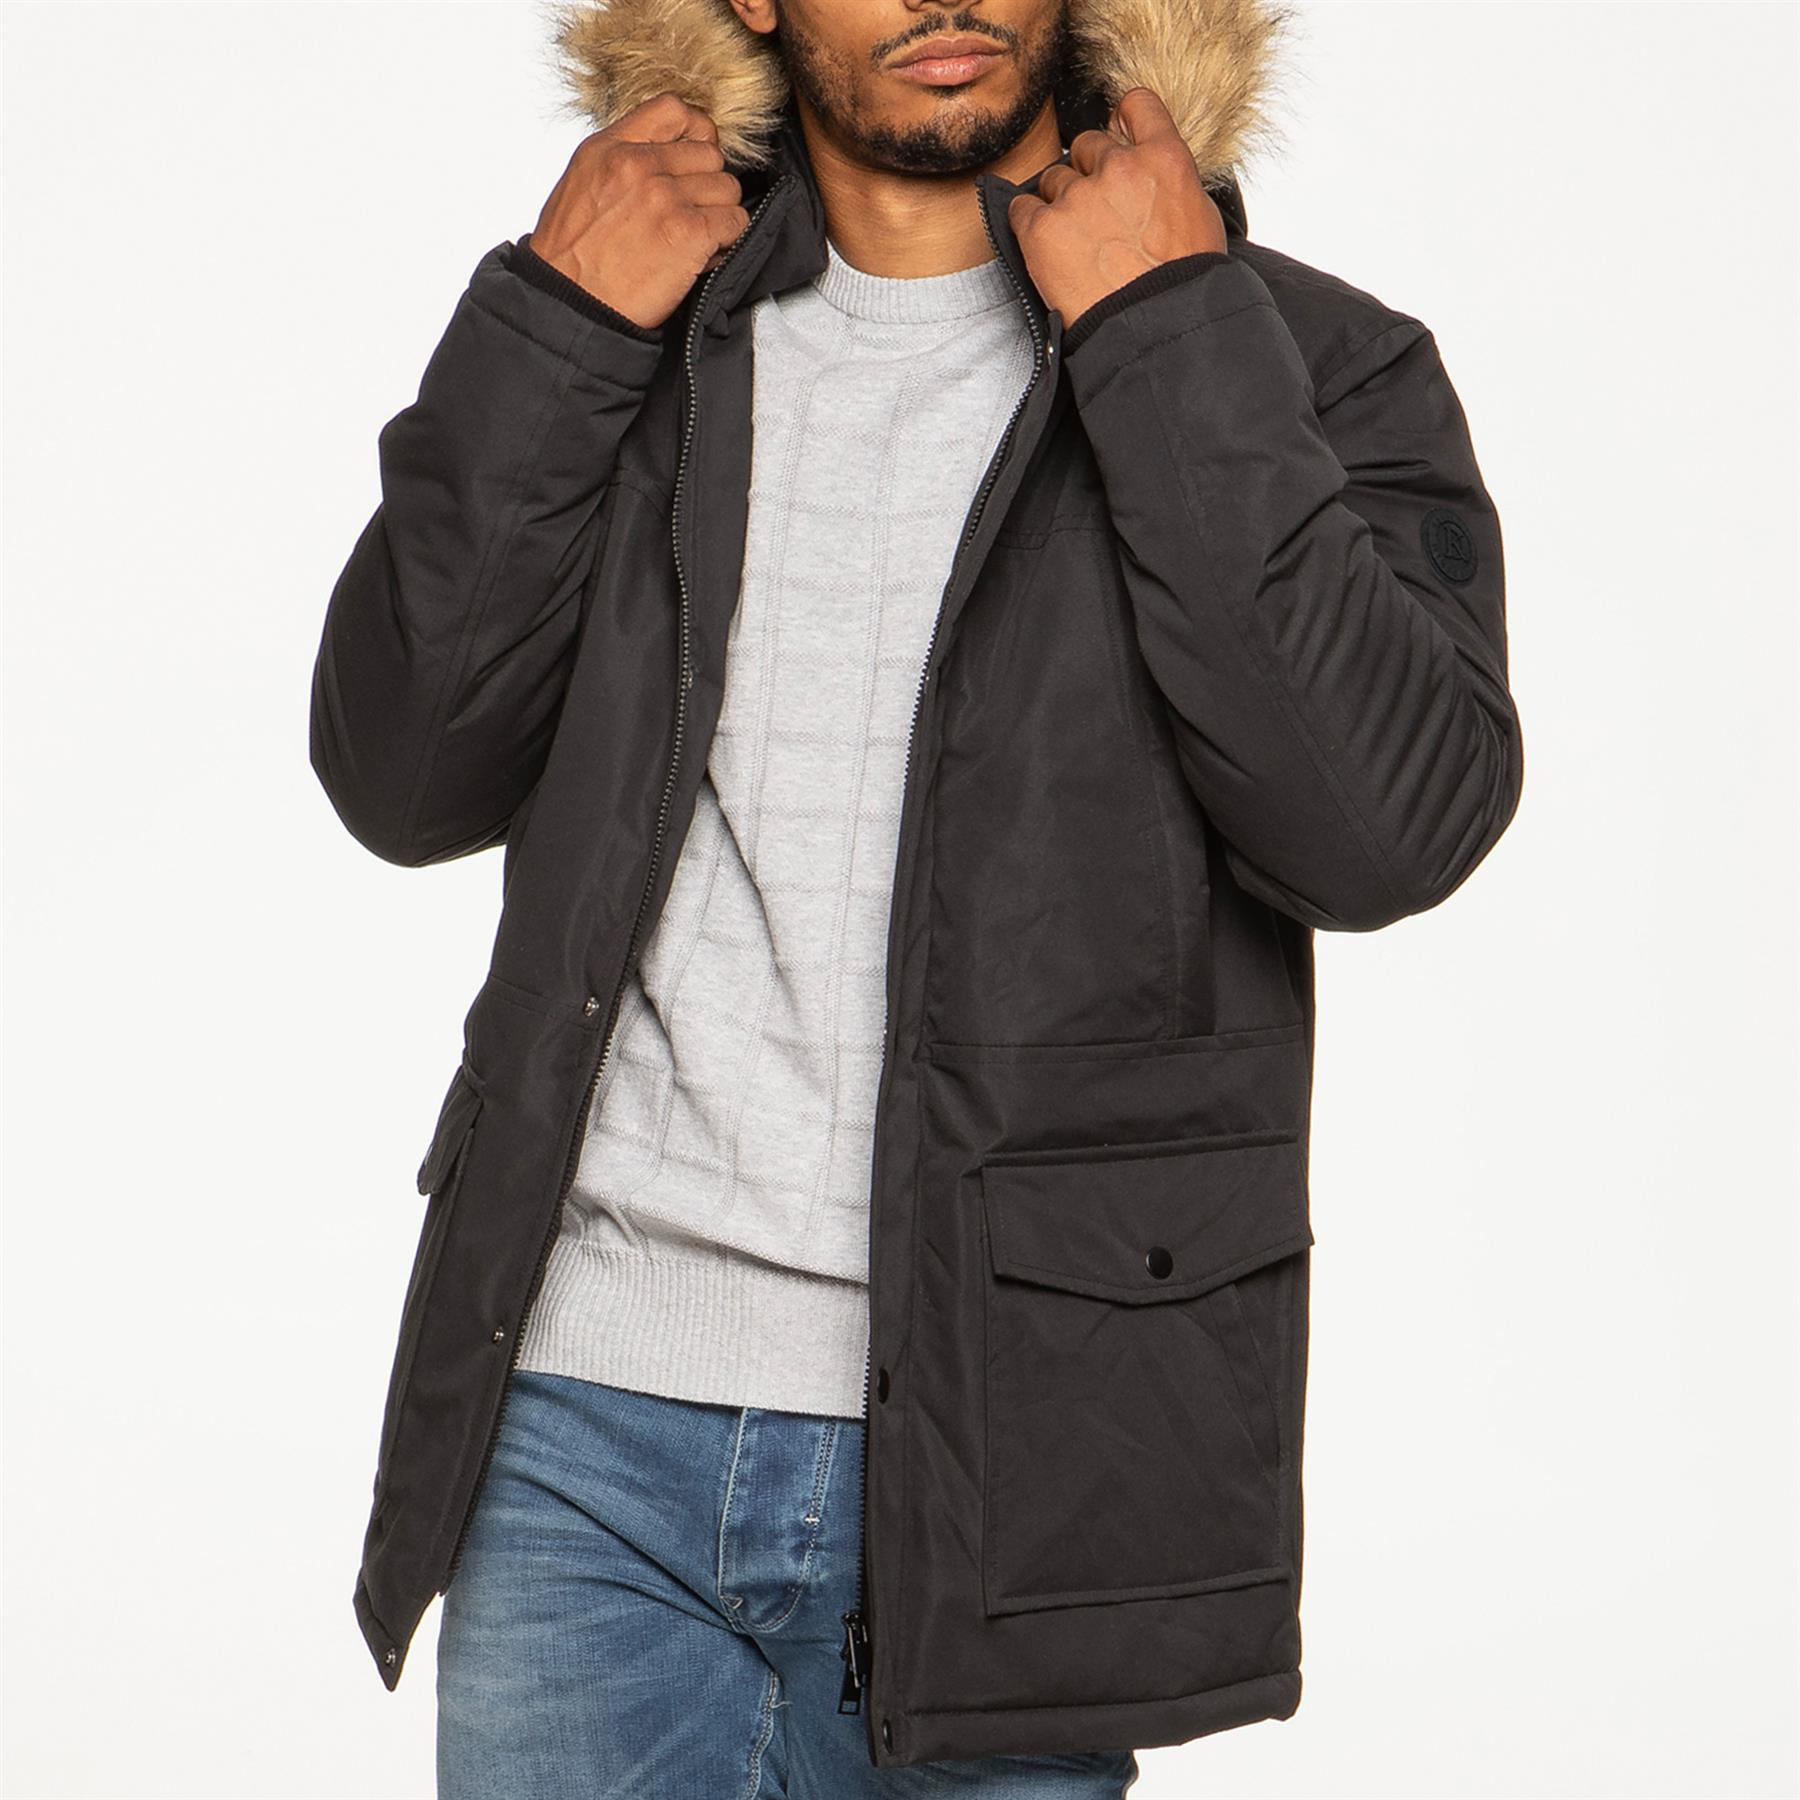 Mens-Parka-Jacket-Faux-Fur-Trimmed-Hooded-Winter-Warm-Long-Padded-Outerwear-Coat thumbnail 4